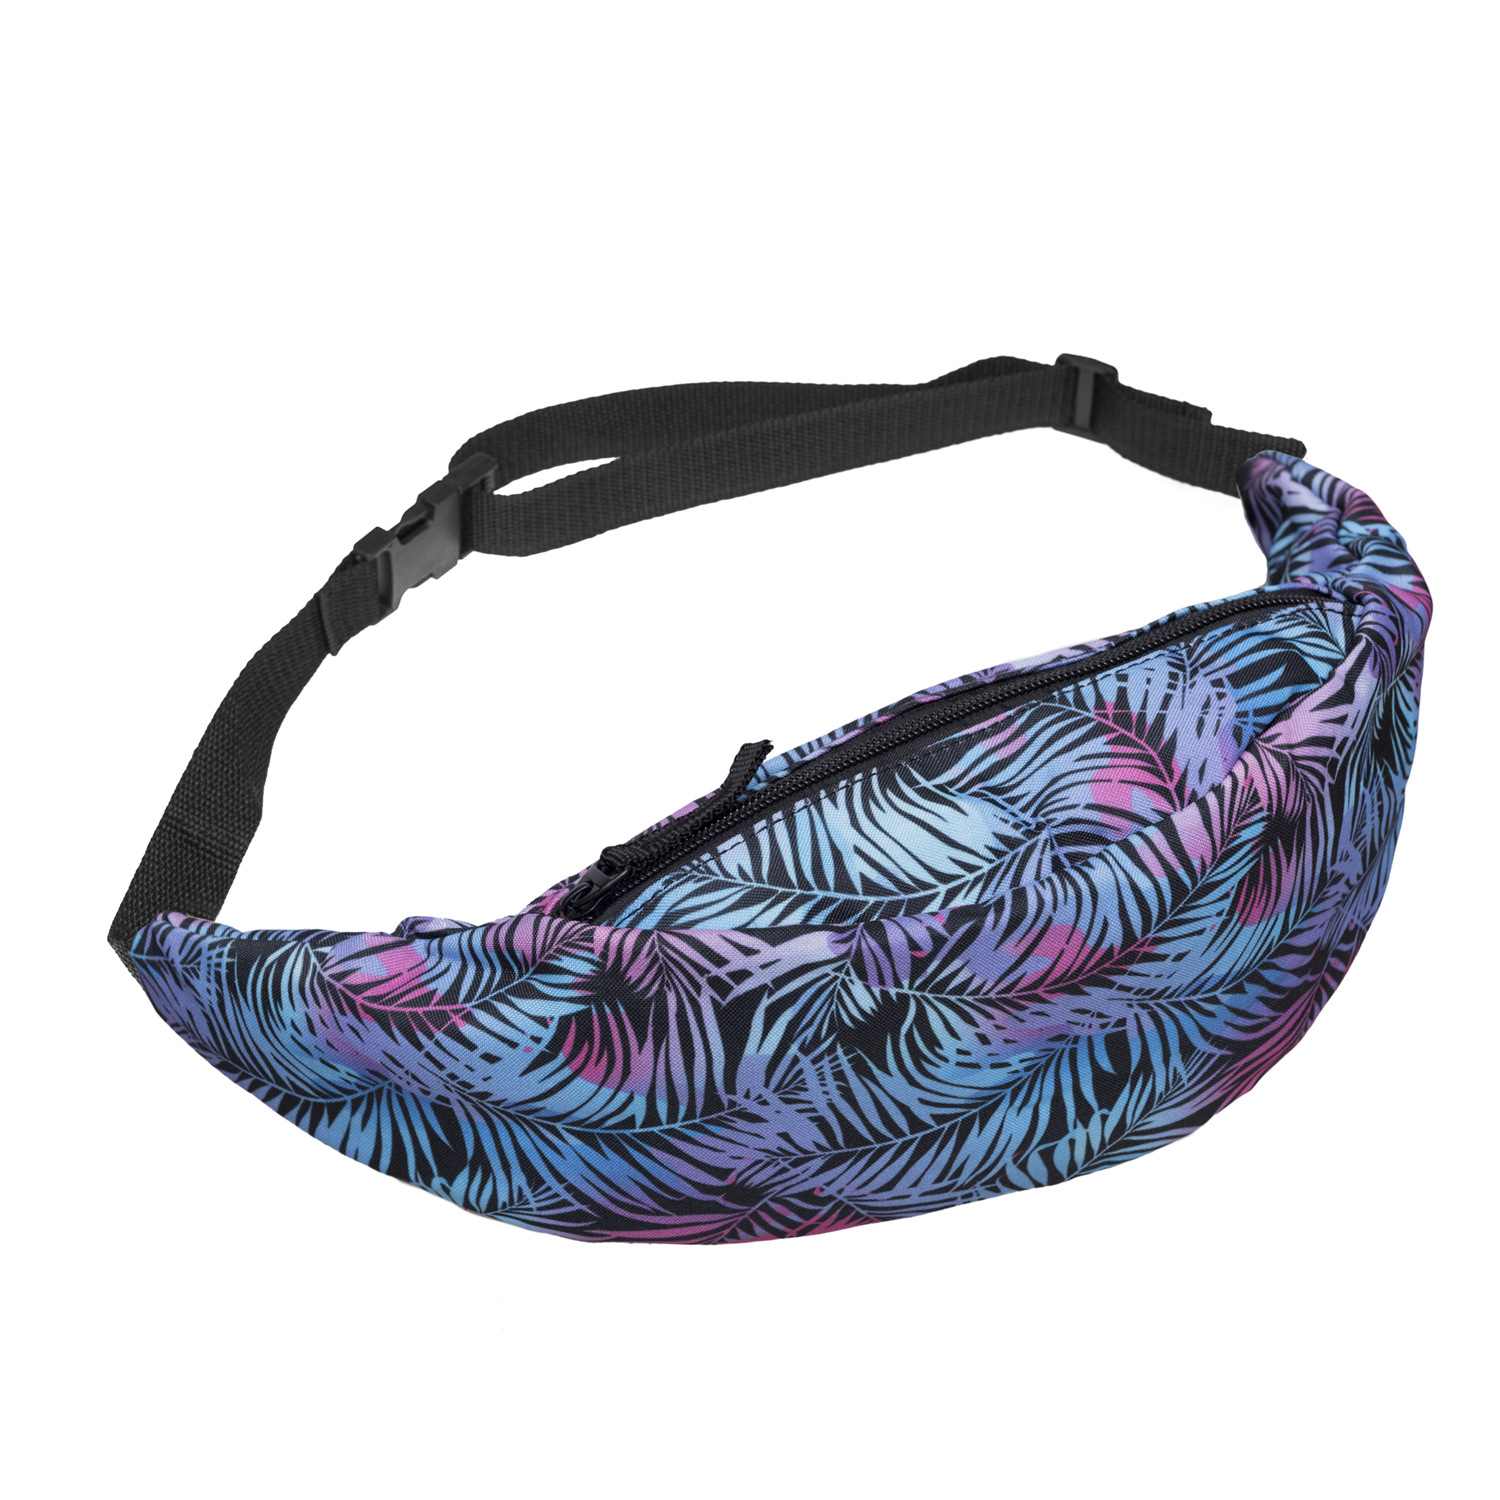 3D Colorful Print Women Waist Bags Girls Fanny Packs Hip Belt Bags Money Travelling Mountaineering Mobile Phone Bag Waist Packs